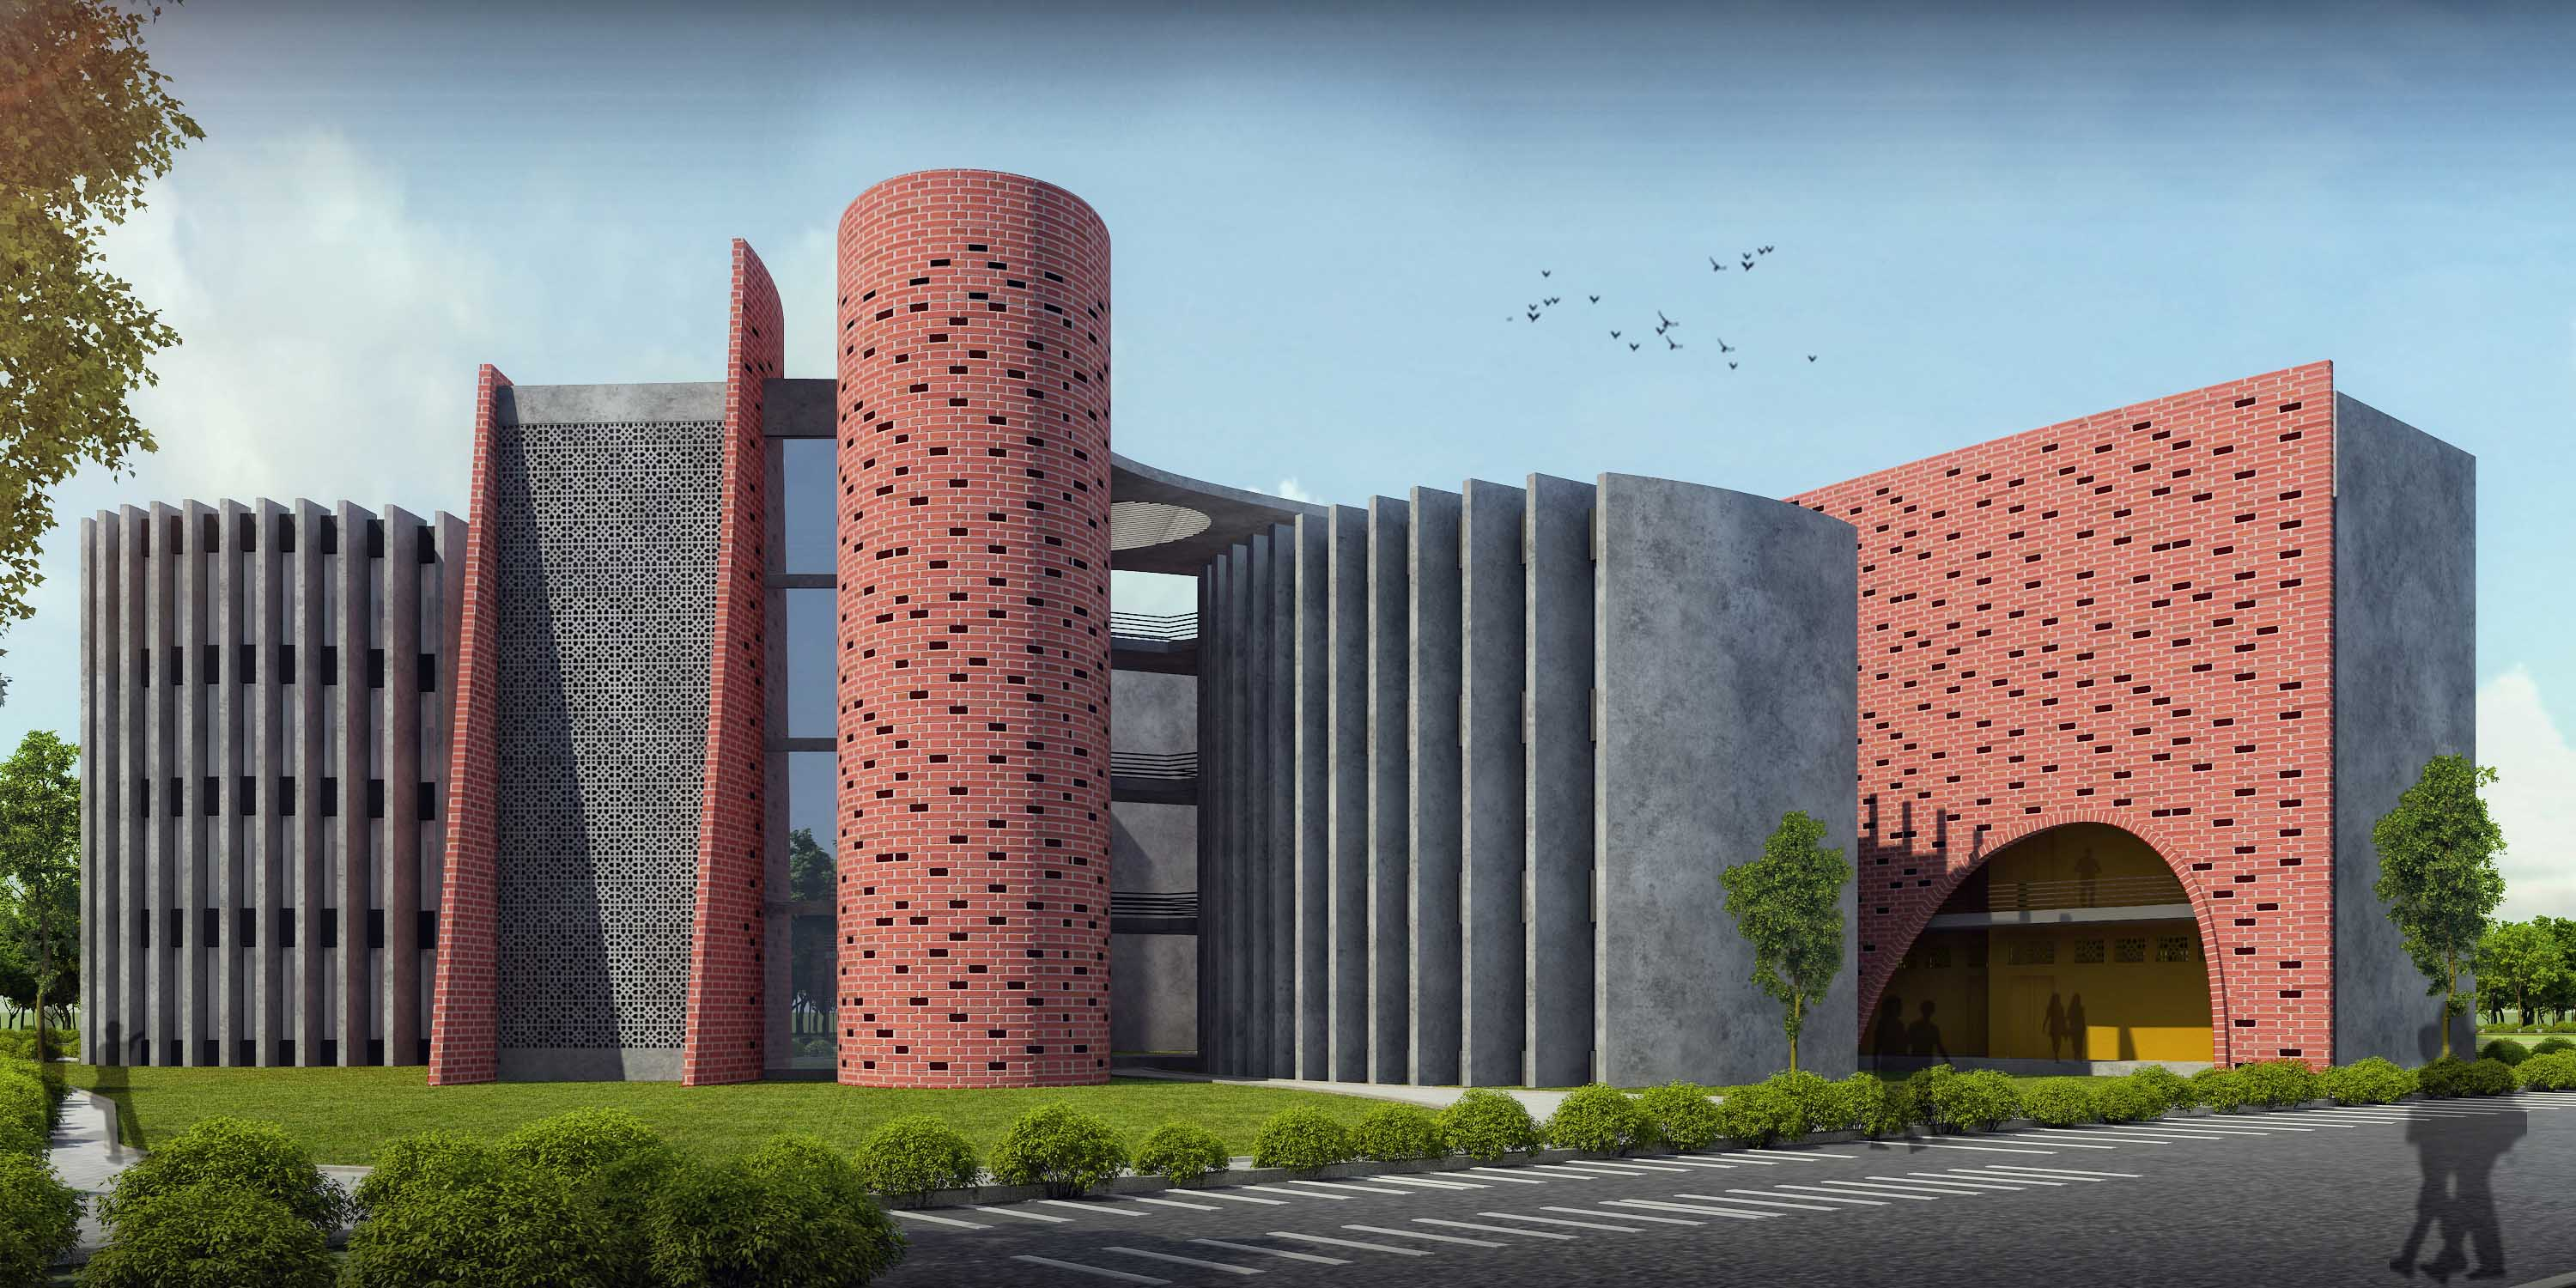 Sanjay Puri Architects